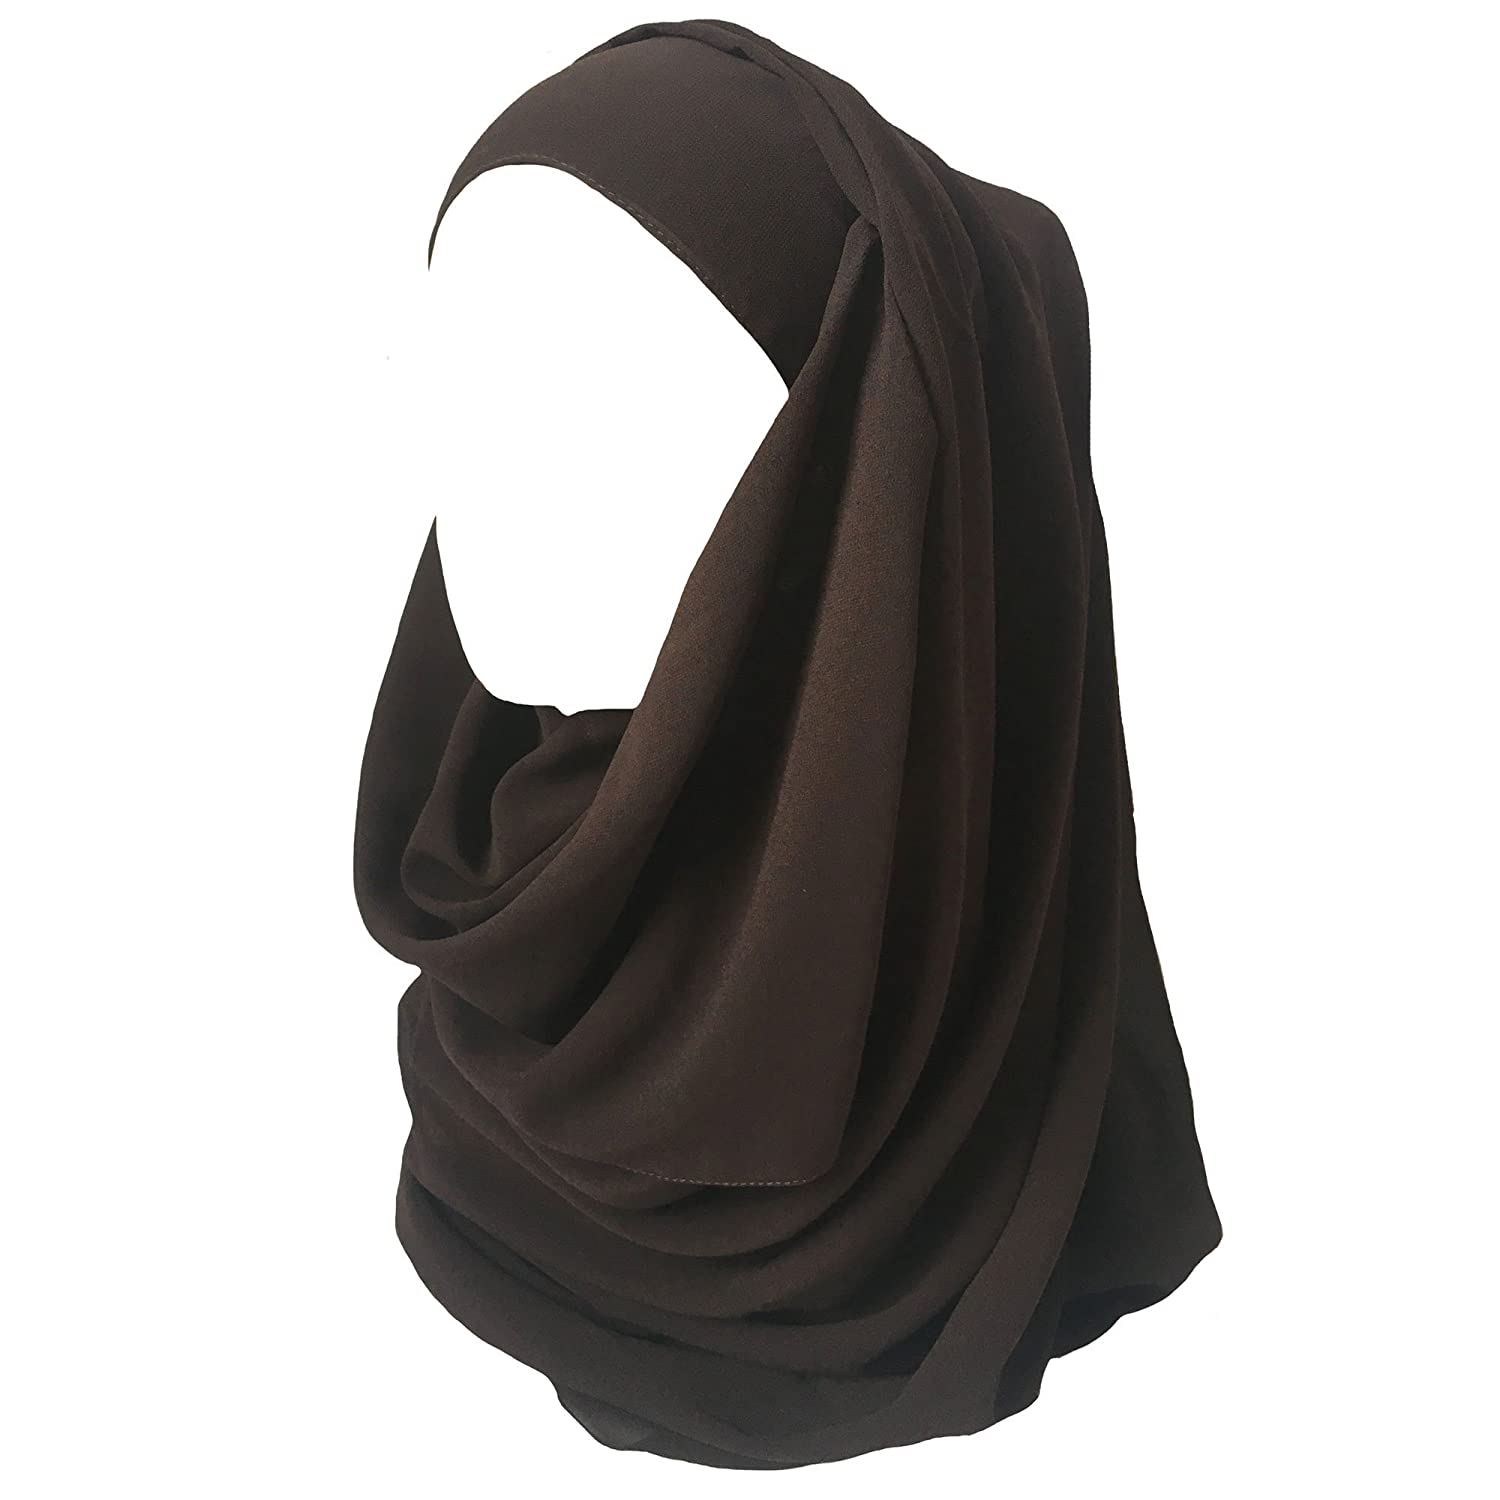 Lina & Lily Solid Color Thick Chiffon Muslim Hijab Long Scarf (Black)